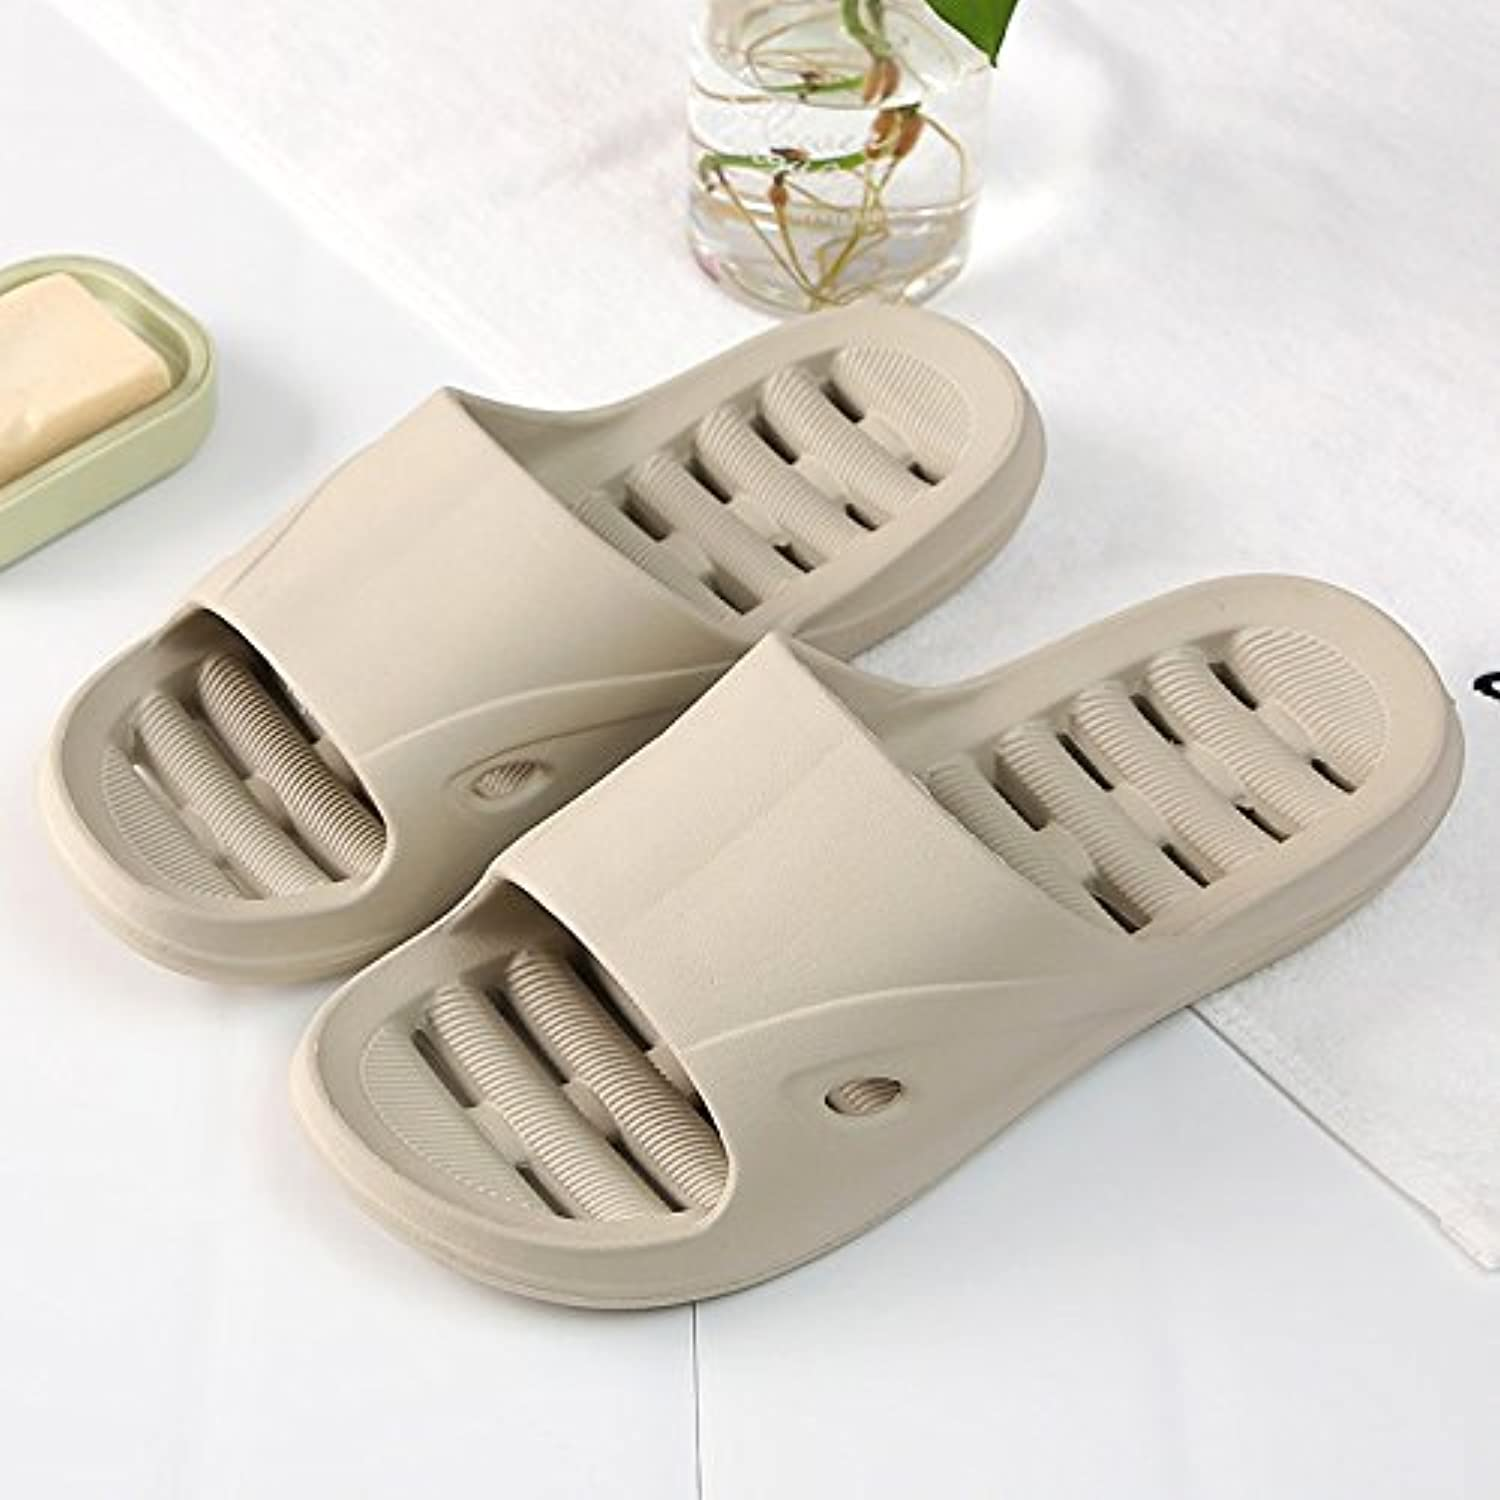 fankou The Bathroom Slippers Summer Female Couples in Your Living Room. Soft, Non-Slip Shower Exposed Fast Dry...